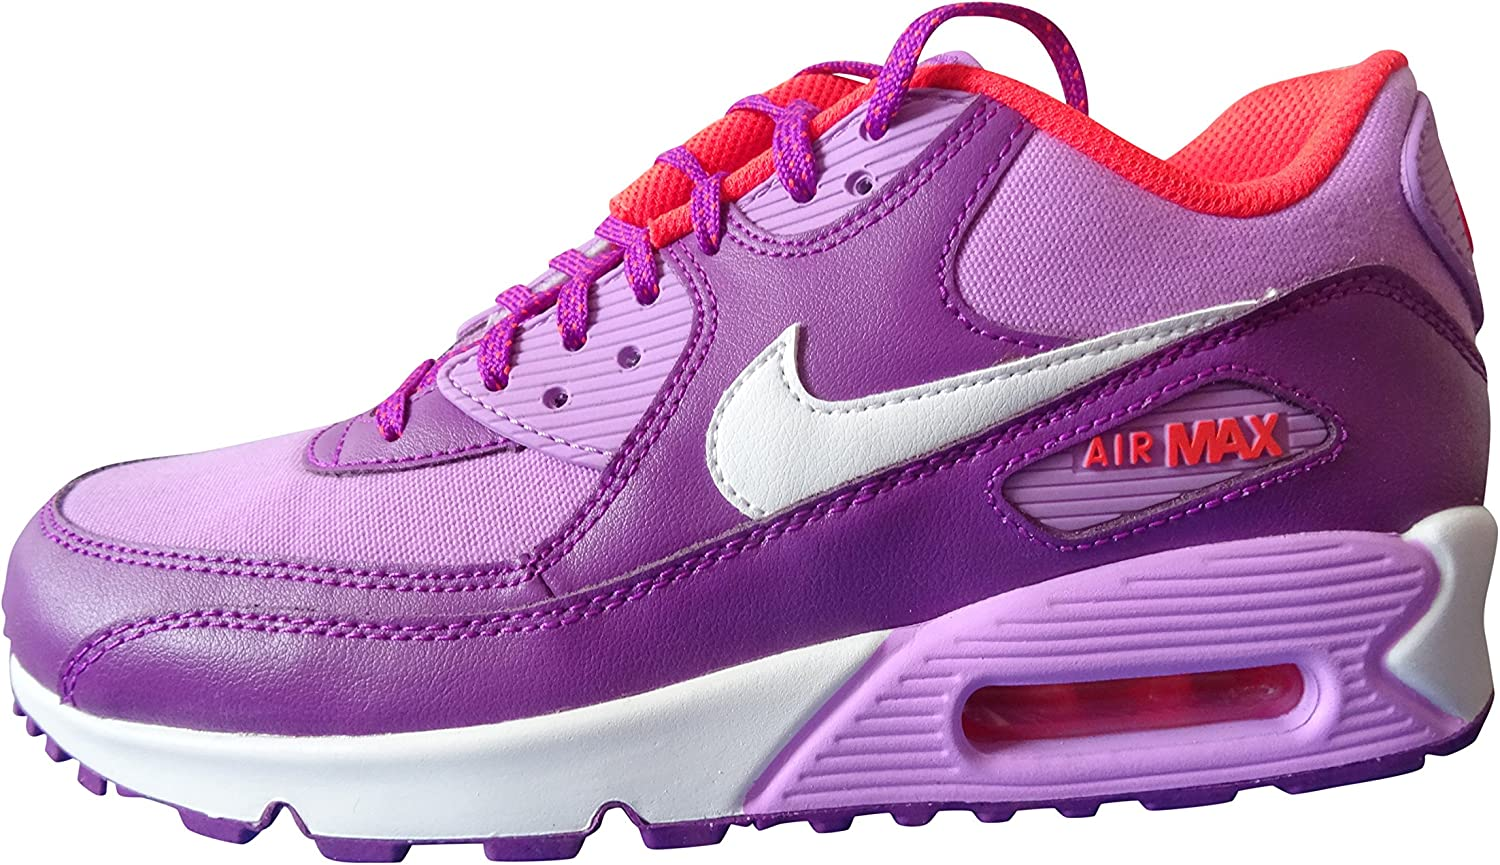 Nike Air Max 90 mesh trainers shoes sneakers 724855 500 NEW GS